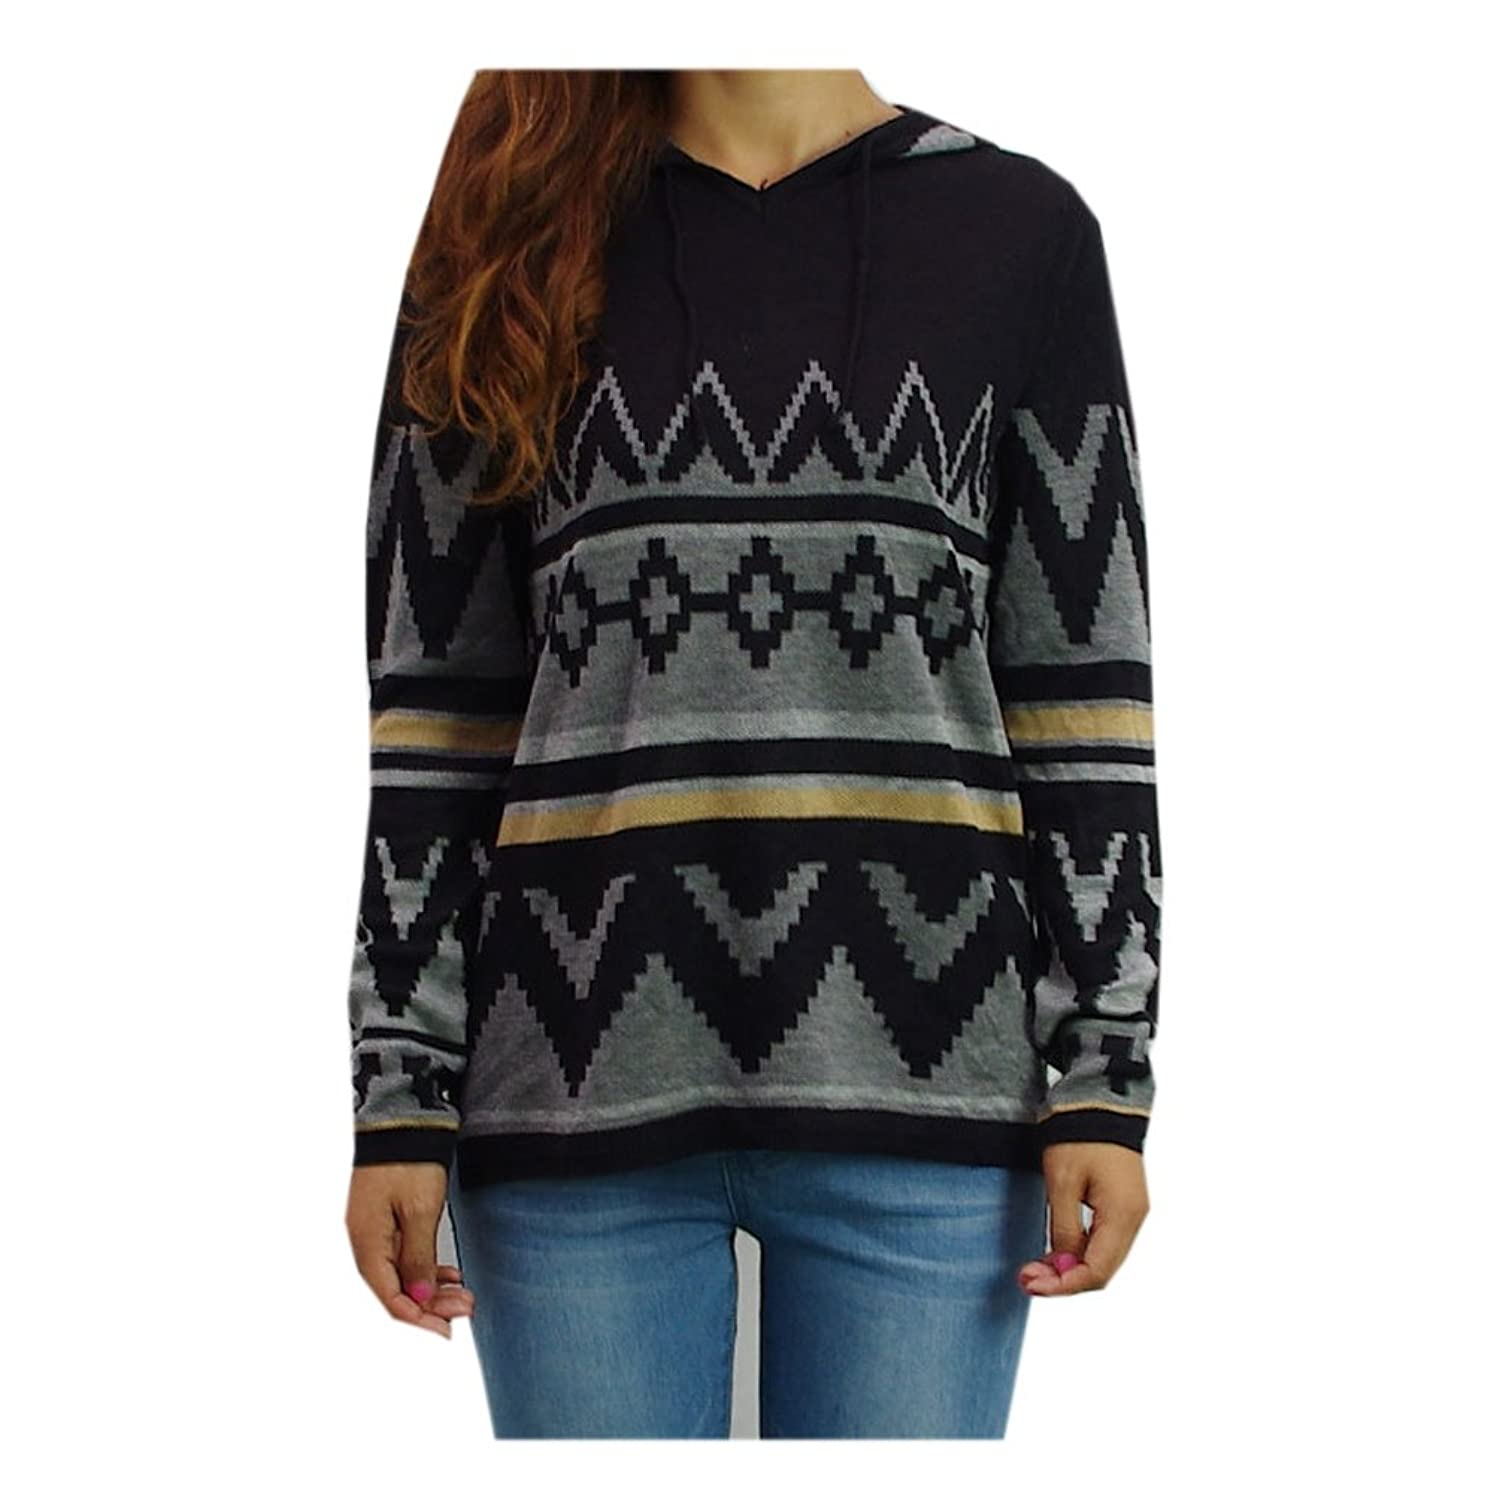 Women's Knitted Pullover Sweater Aztec Hoodies Sports Style Black